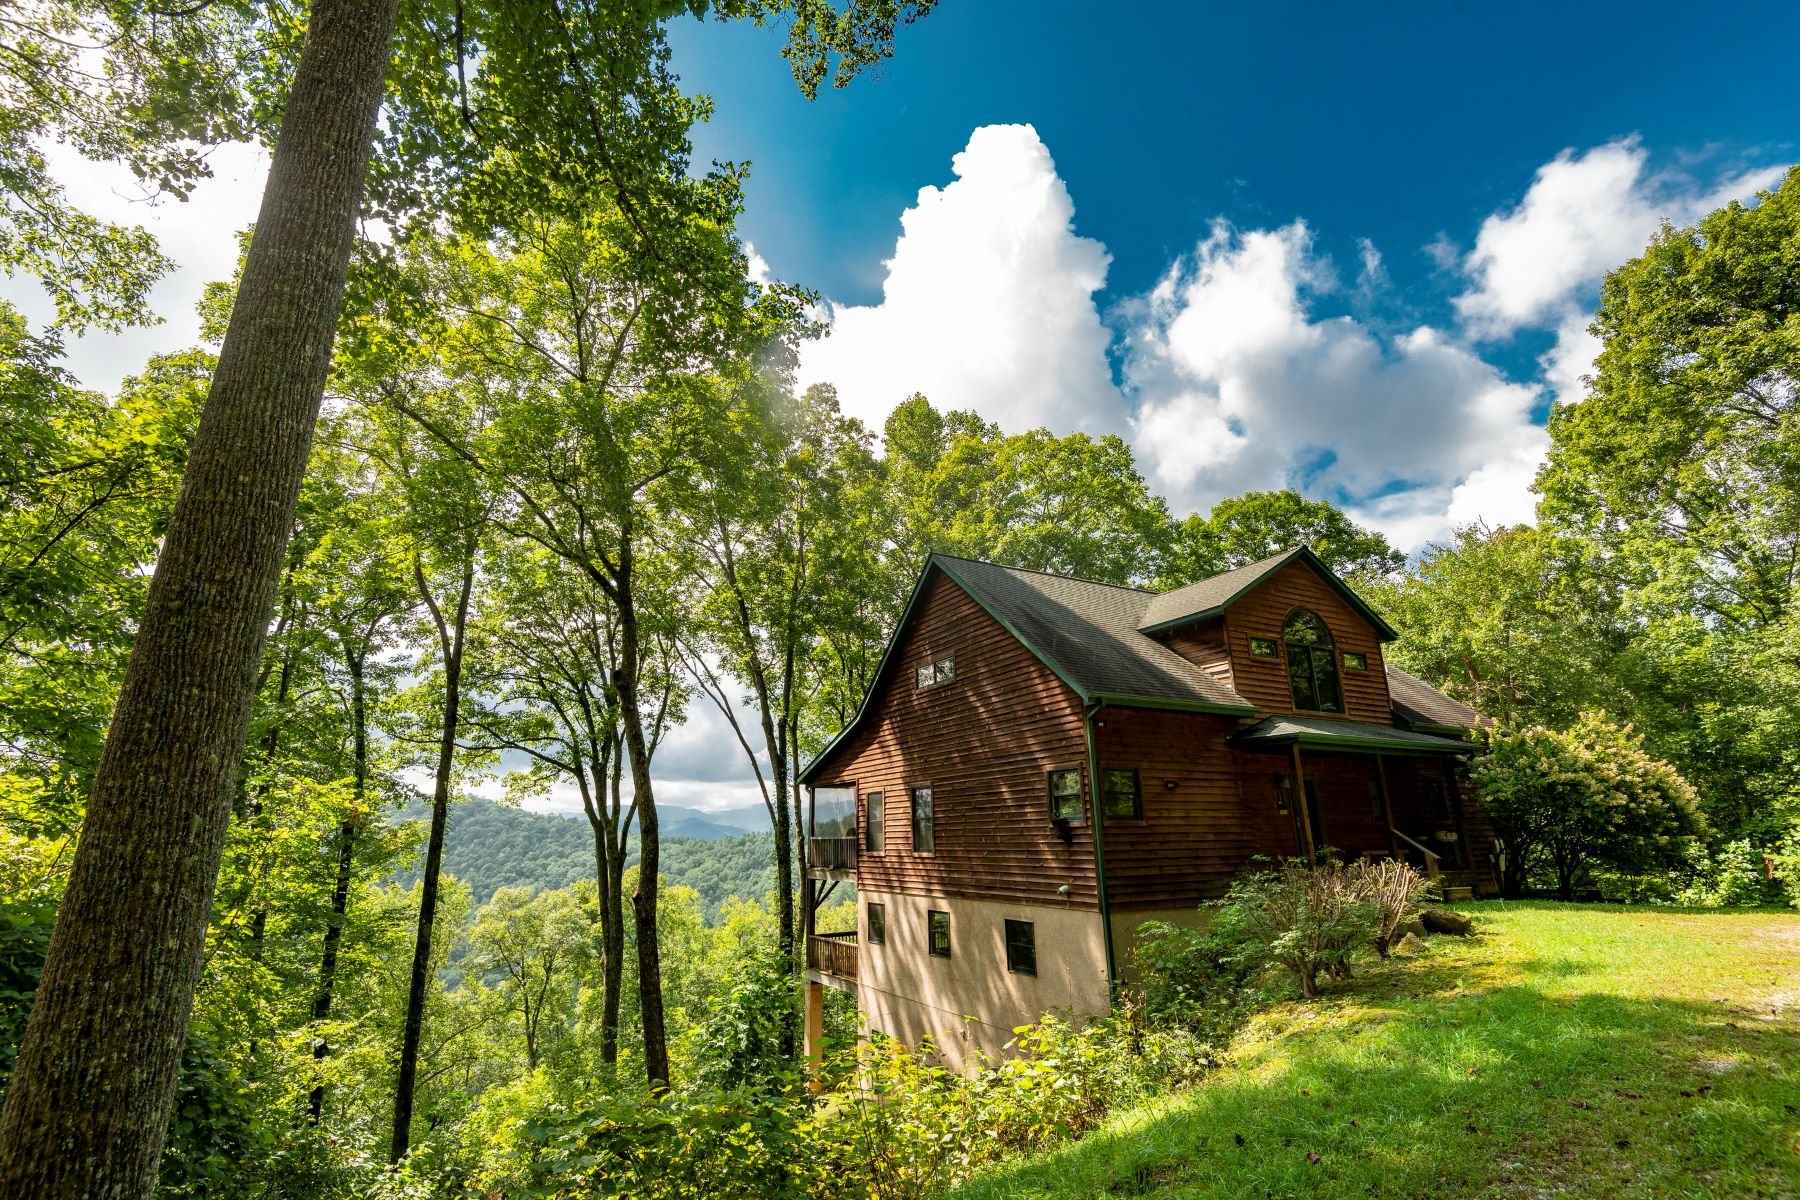 Single Family Home for Active at Hurrah @ Highland Gap 382 Hurrah Ridge Scaly Mountain, North Carolina 28775 United States